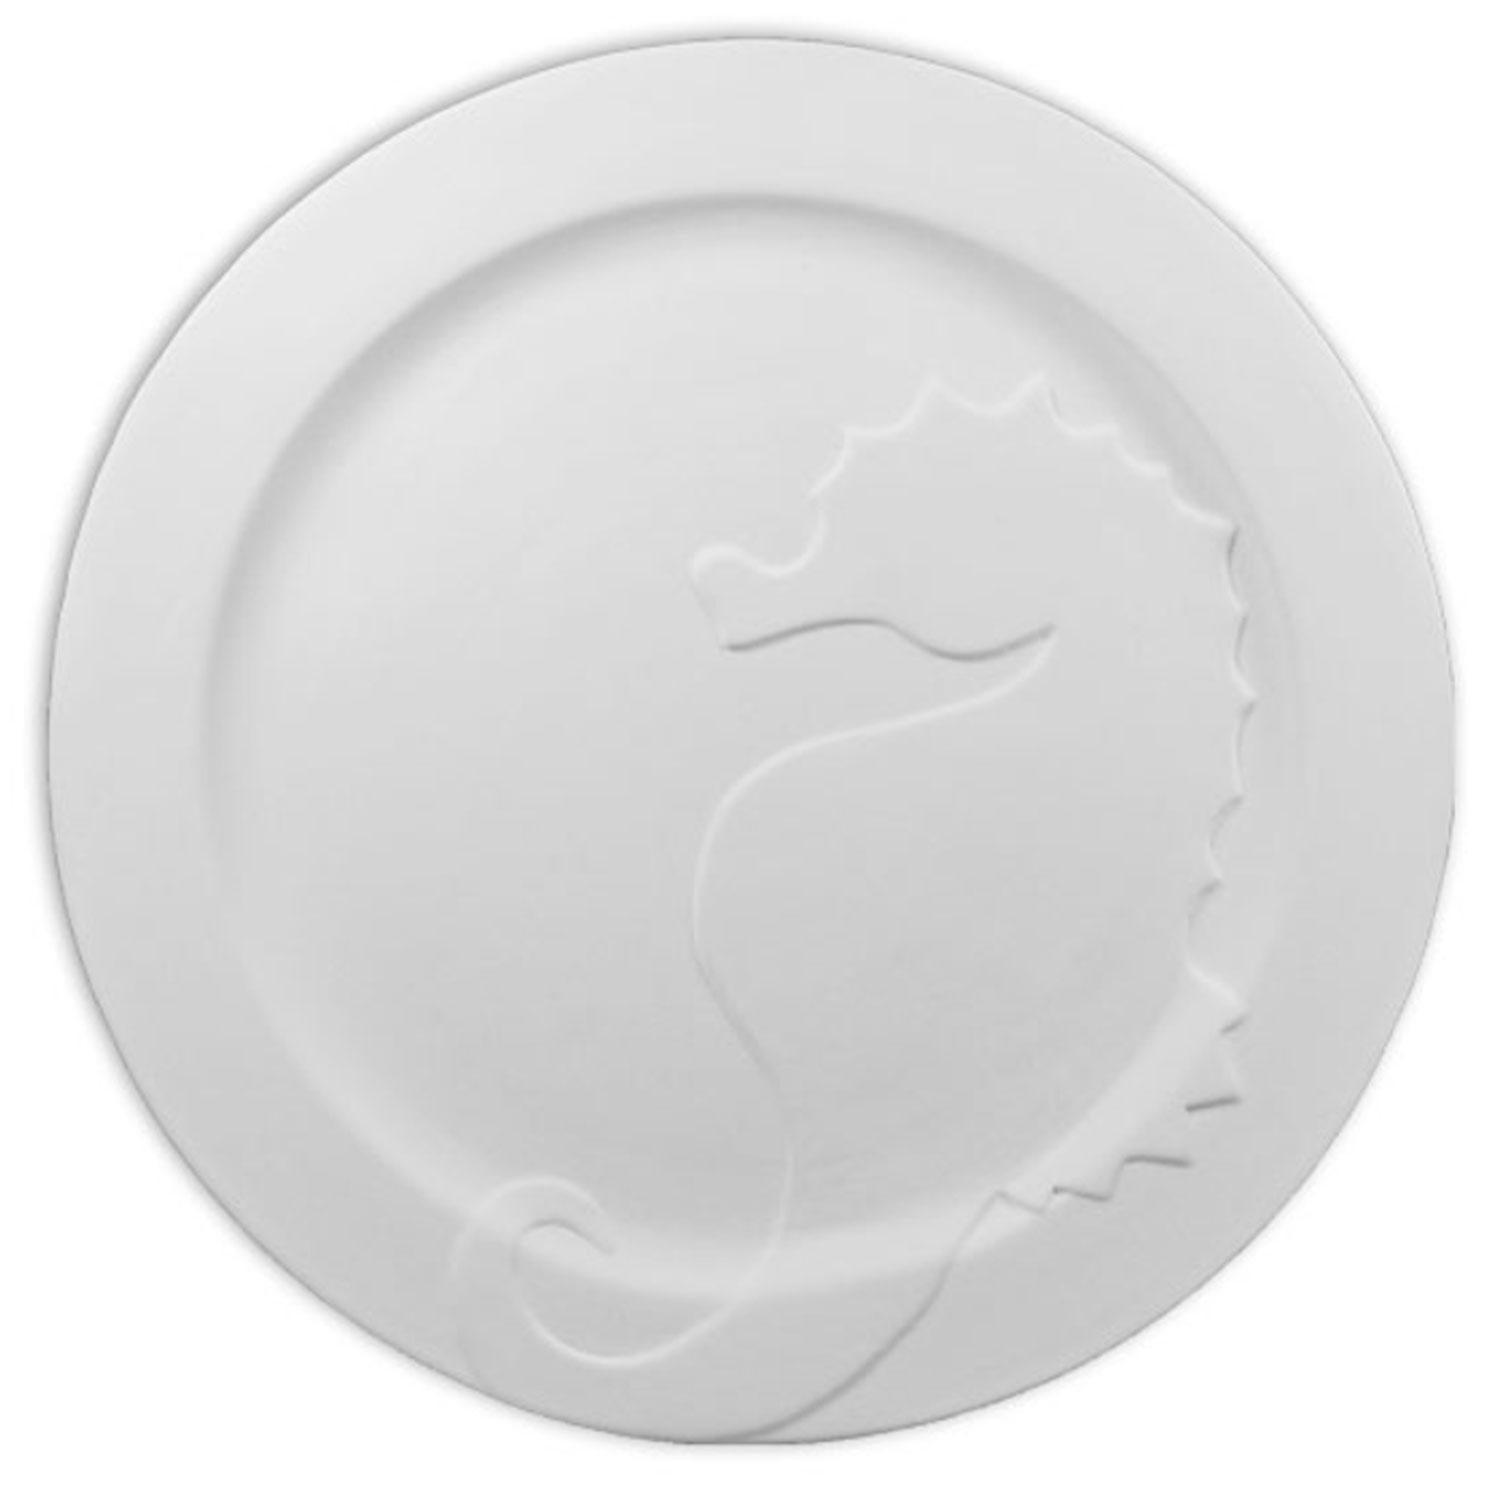 10-1/4 Seahorse Plate Mold